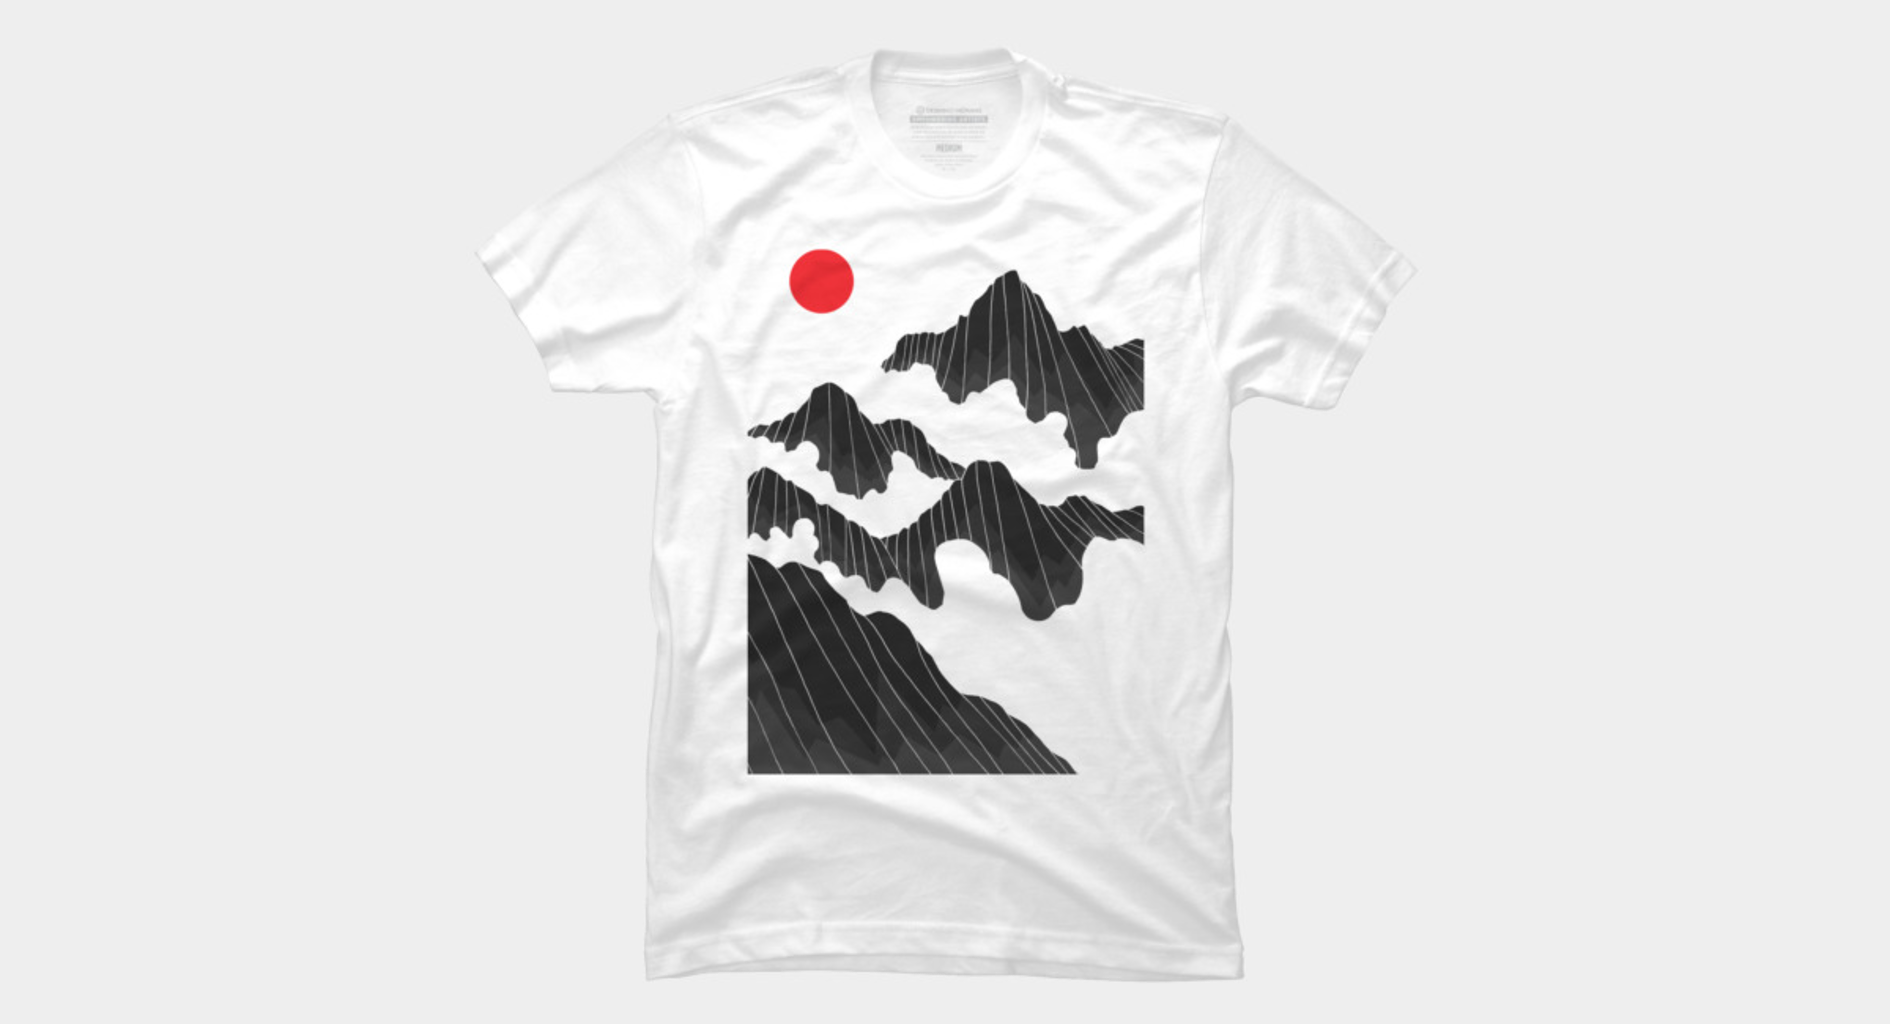 Design by Humans: A red sun over the cloudy mountains